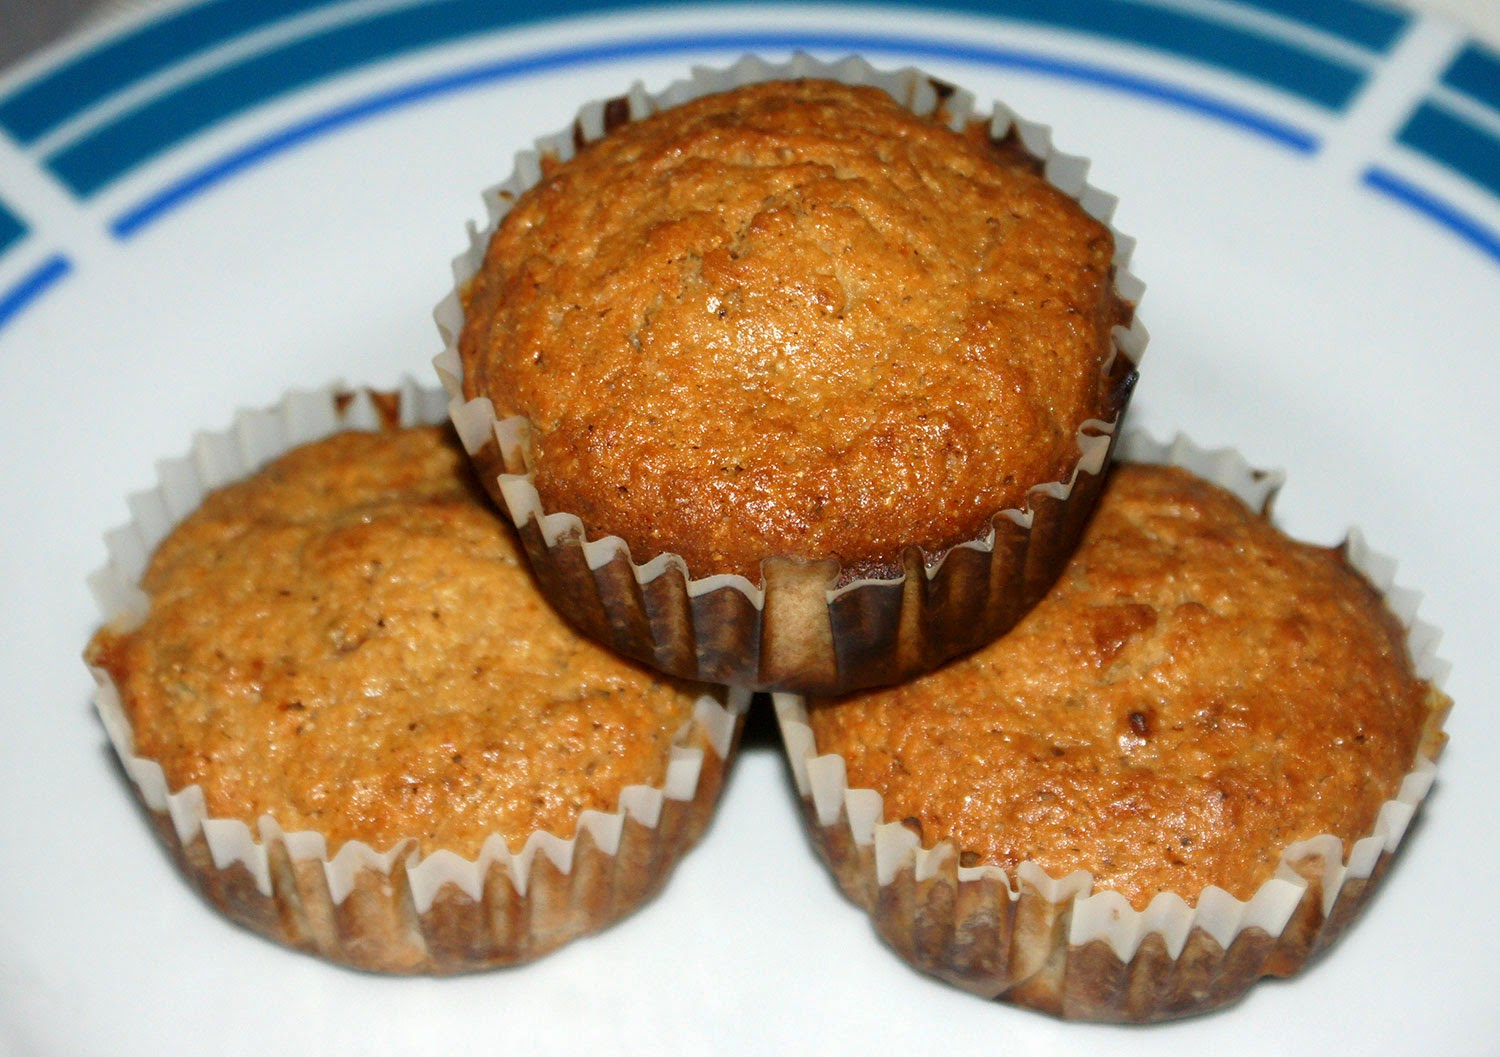 Marmalade Breakfast Muffins: A classic breakfast corn and wheat flour muffin flavoured with marmalade and citrus zest. Delicious and ready in less than 30 minutes from when you first begin to prepare them.